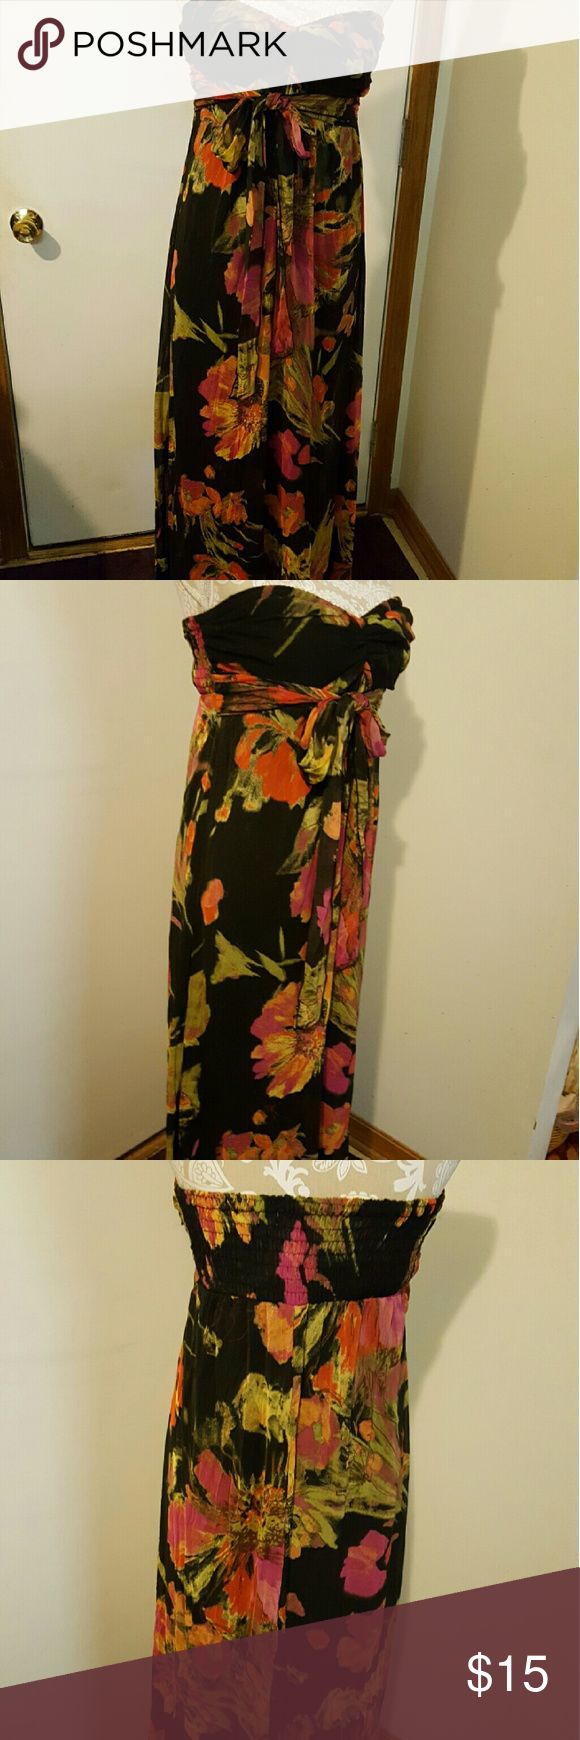 Xhilaration black tropical strapless maxi dress Has been worn Size large Strapless Maxi dress Tie waist line No Trades Xhilaration Dresses Maxi